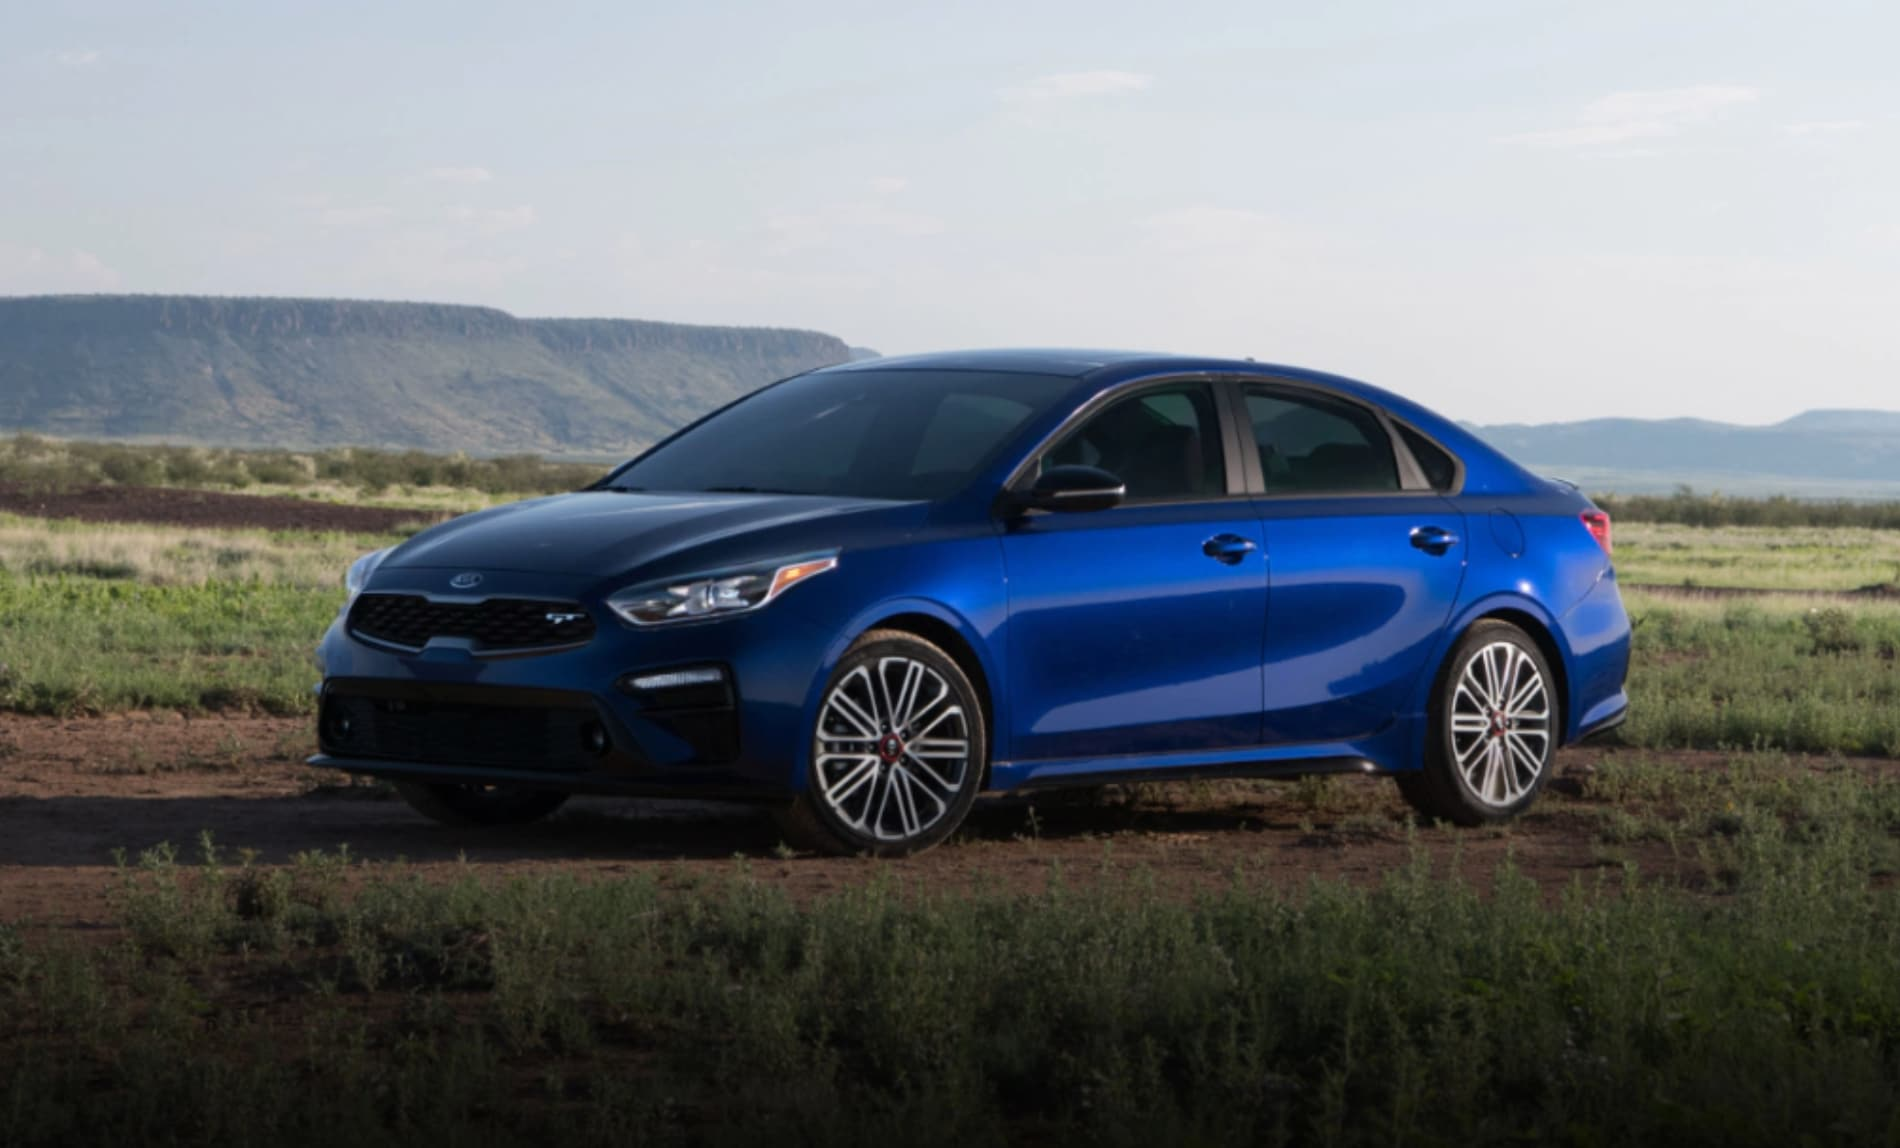 2021 Kia Forte in Huntington Beach, CA